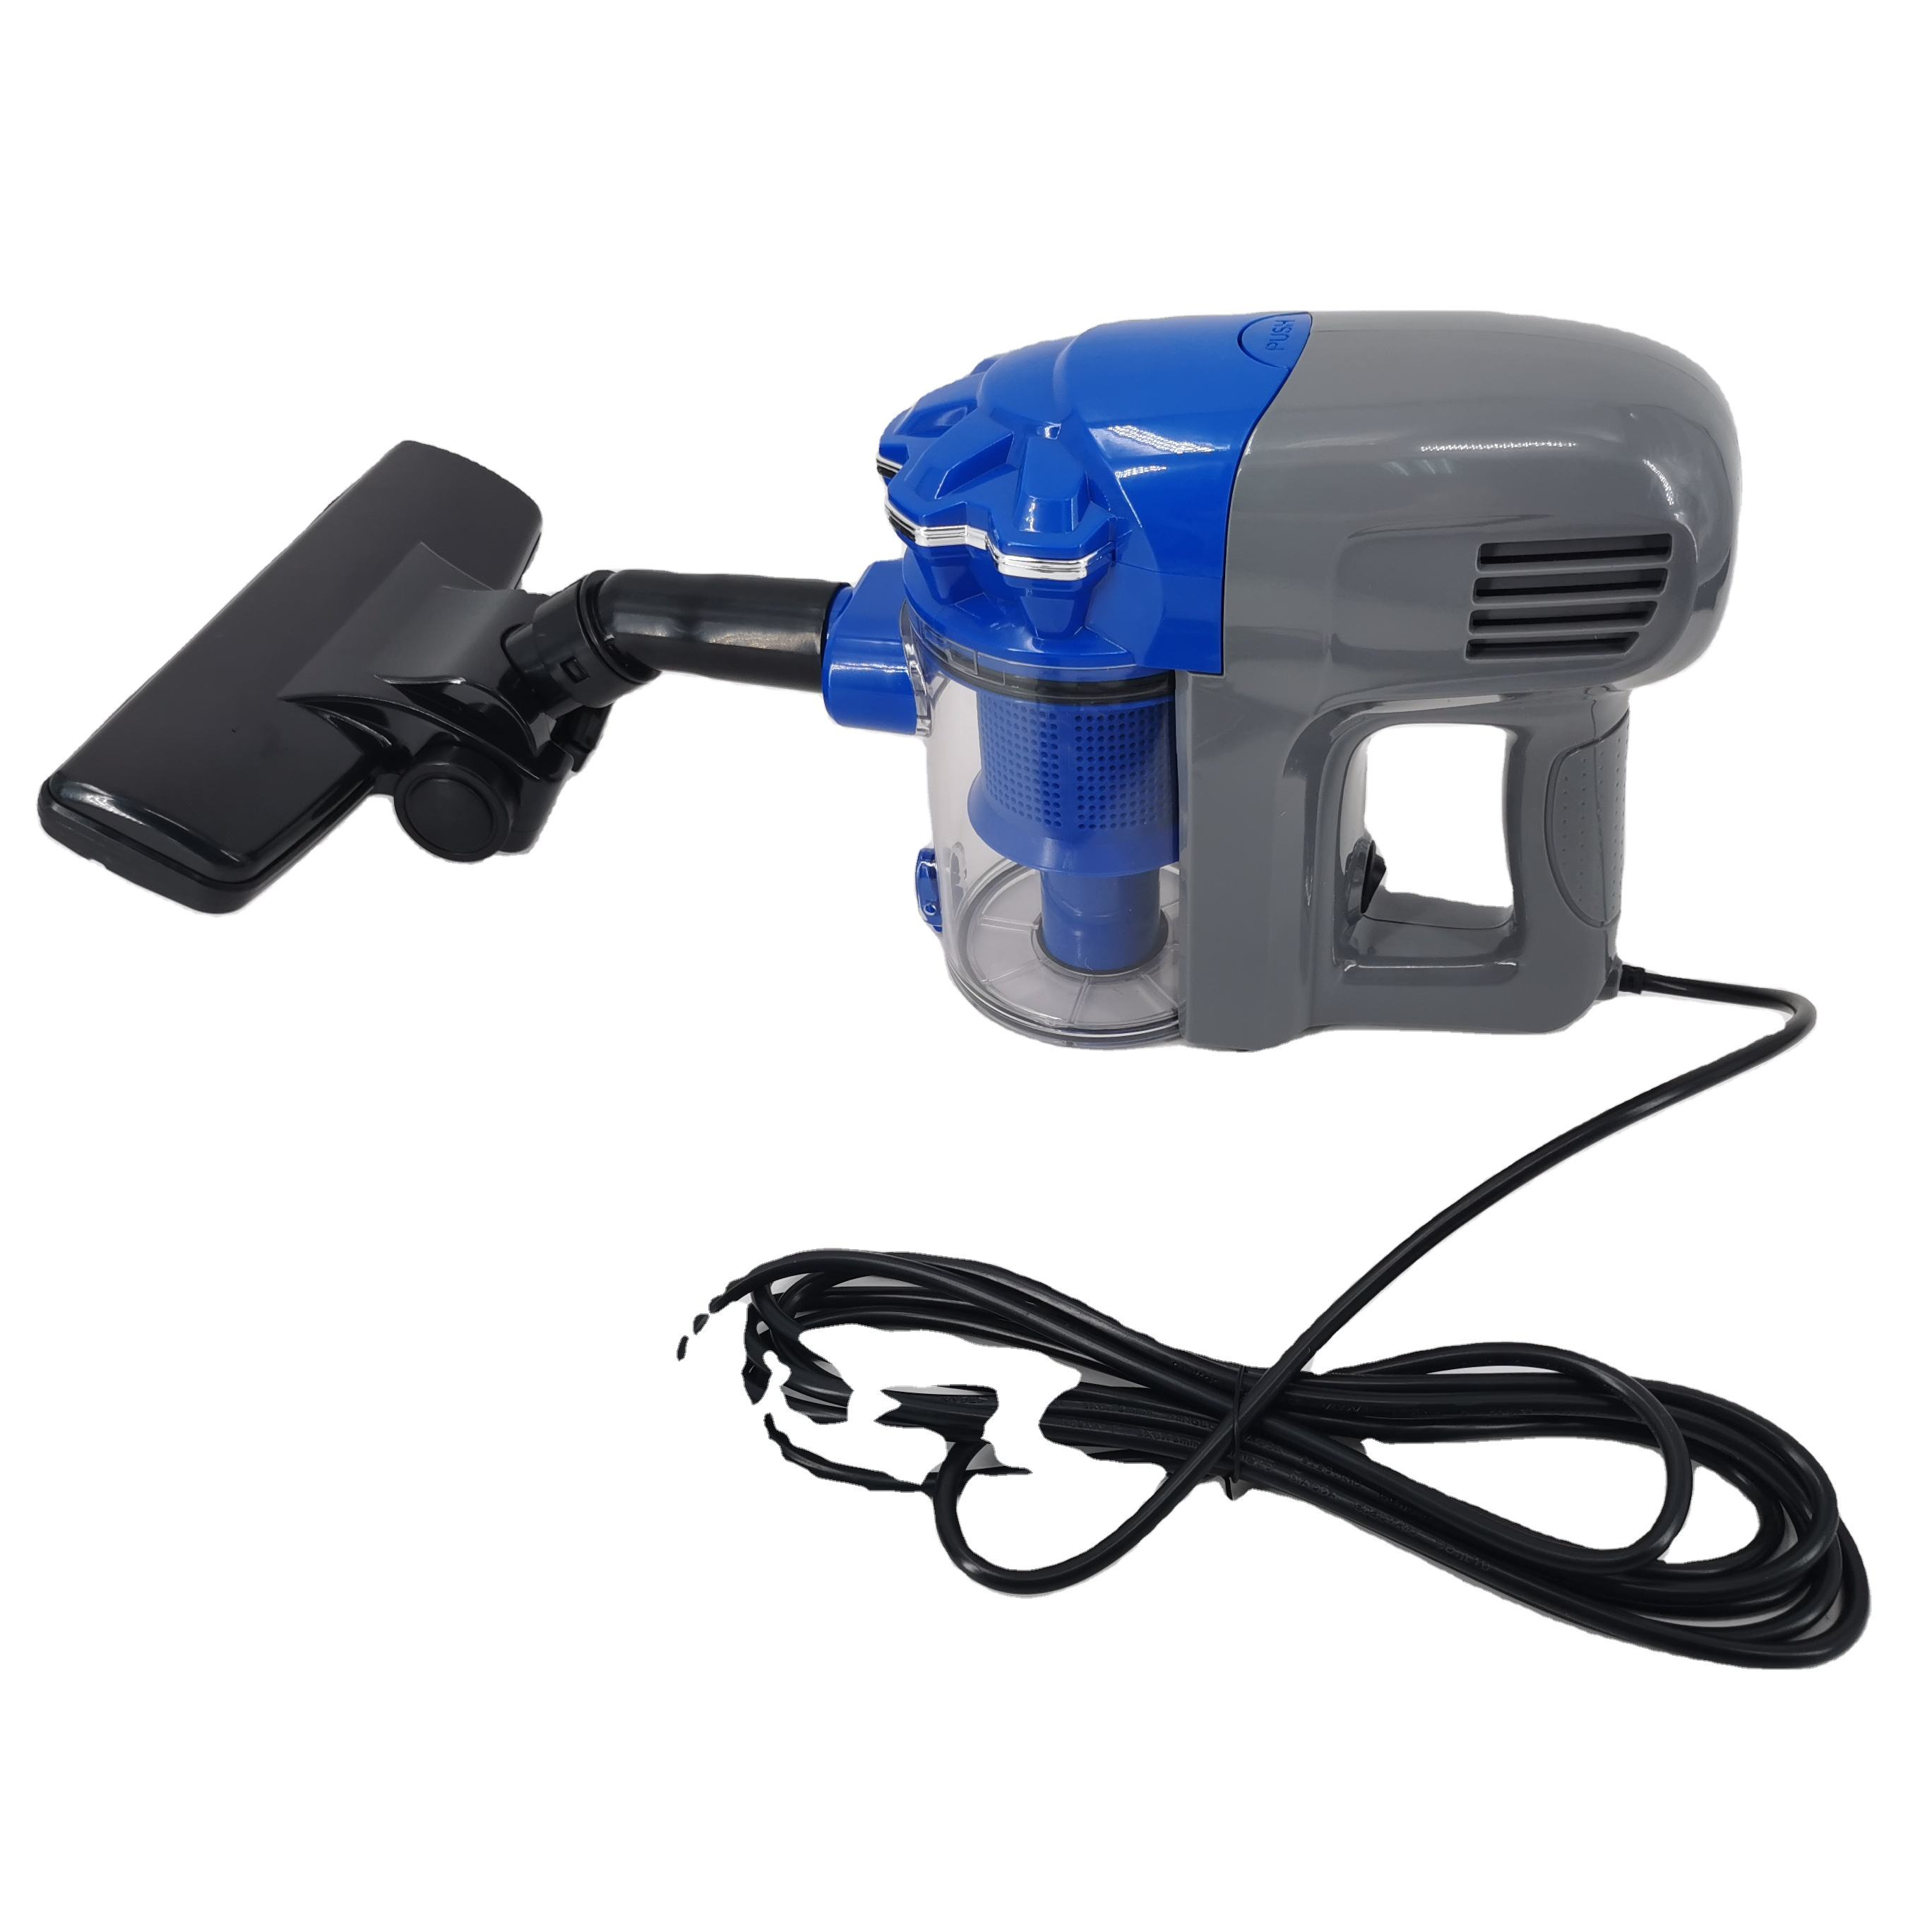 2 In 1 Handheld Siklon <span class=keywords><strong>Vacuum</strong></span> <span class=keywords><strong>Cleaner</strong></span>